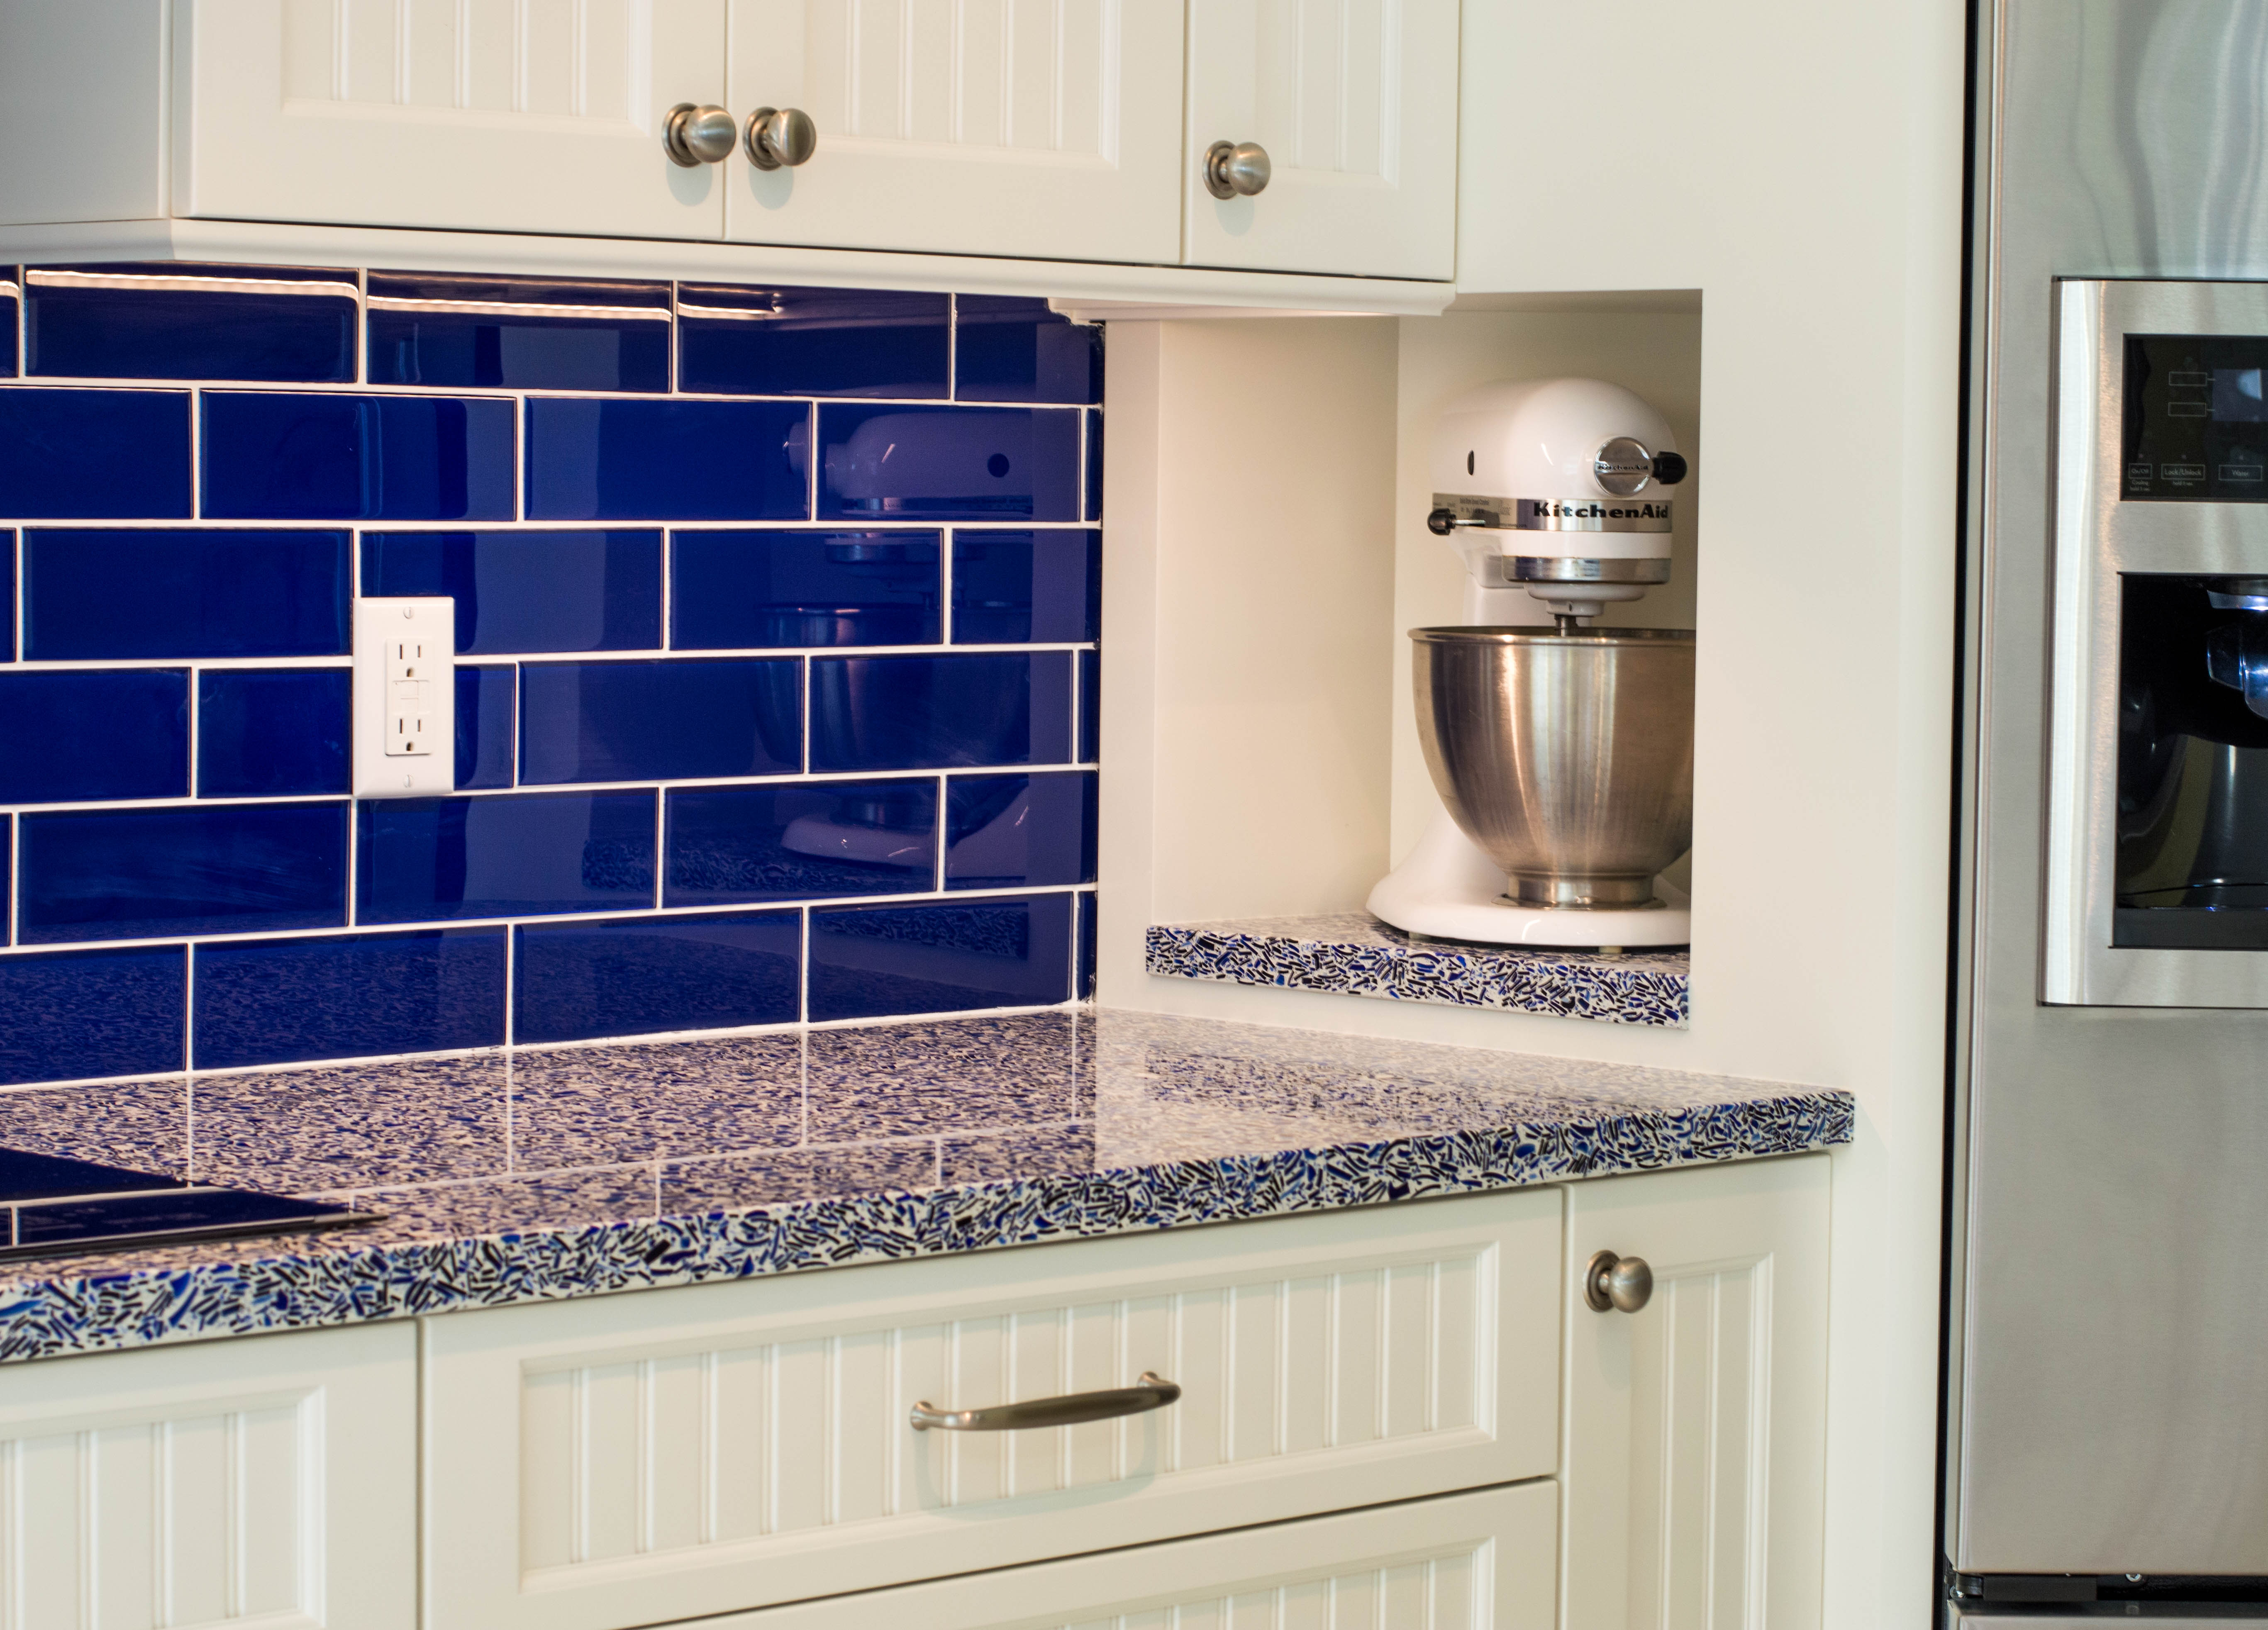 4-waterview kitchens featuring crystal cabinets and vetrazzo recycled glass with creative storage